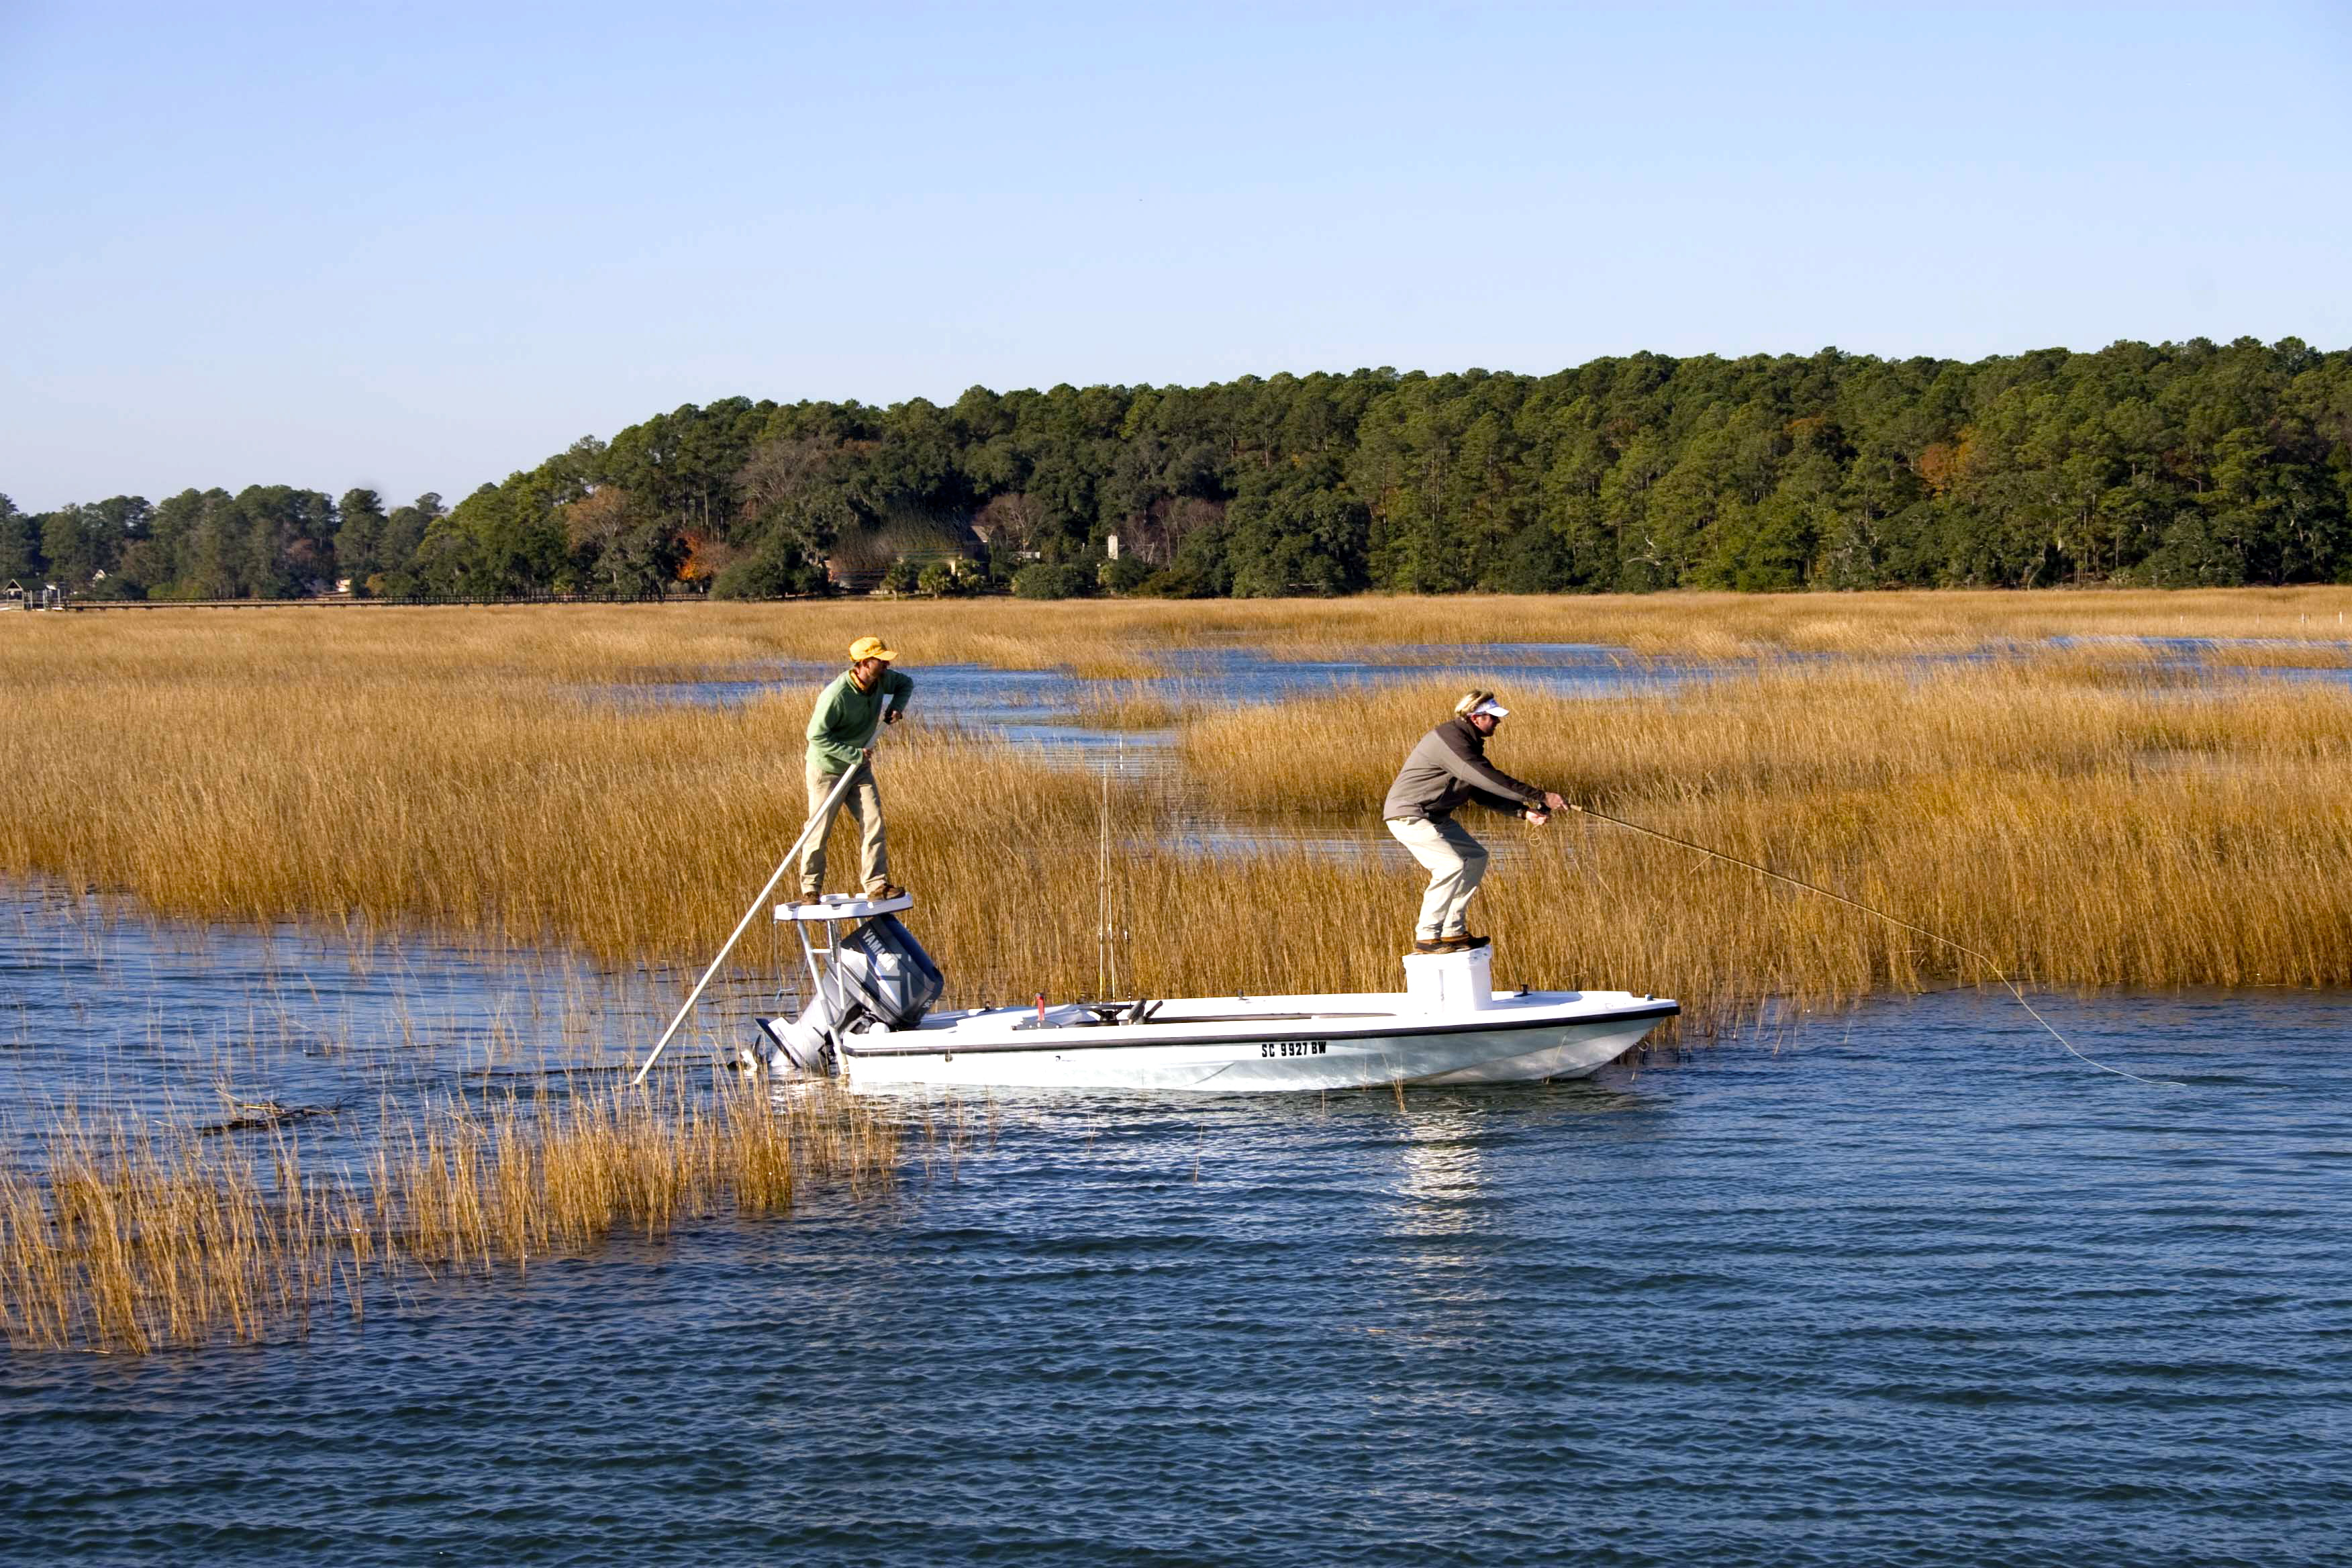 Hilton head fishing charters inshore fishing guide for Hilton head inshore fishing